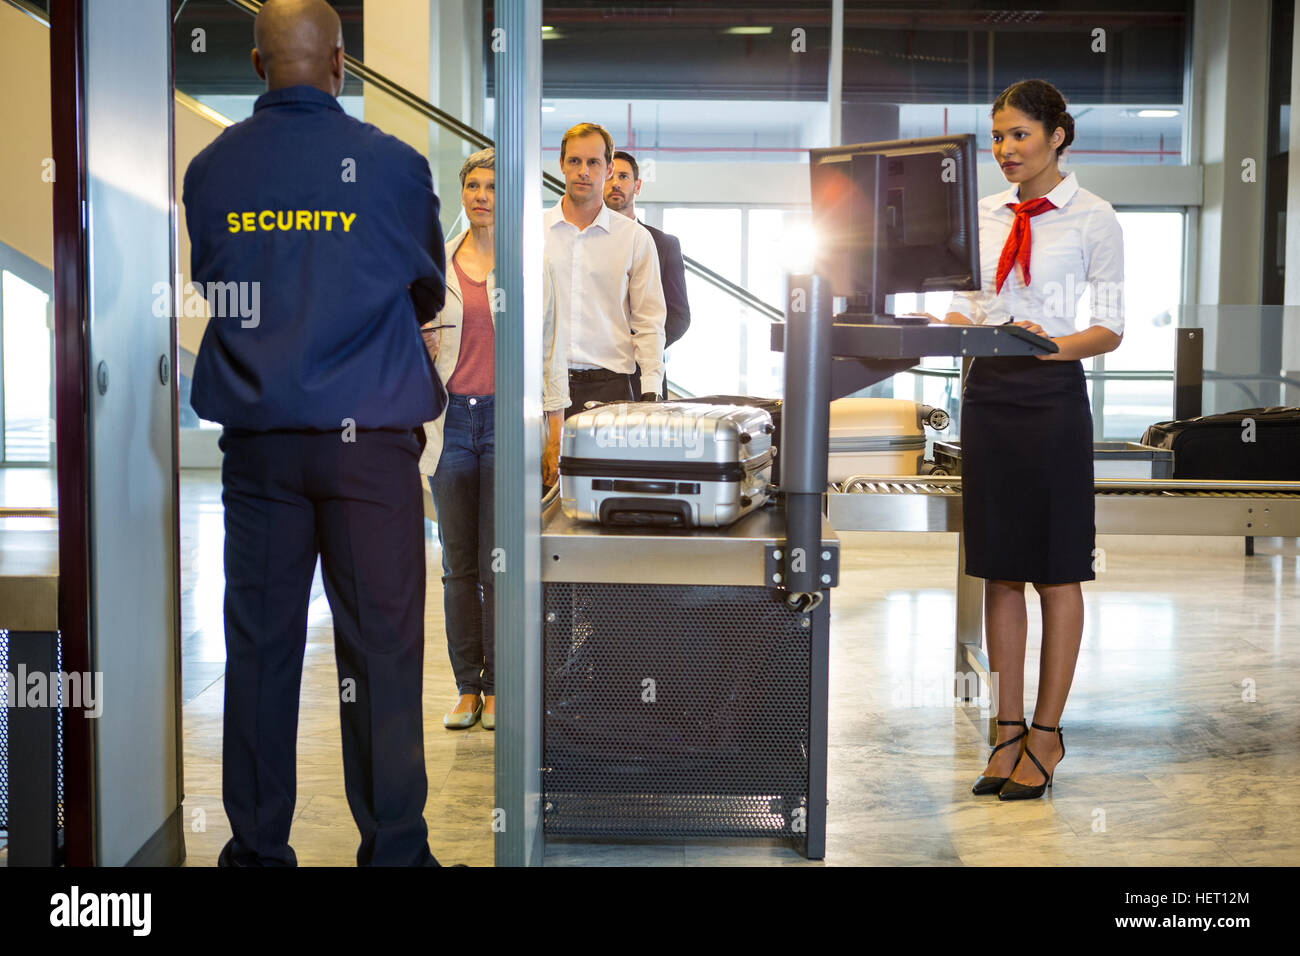 Guard Airport Security Pearson Jobs